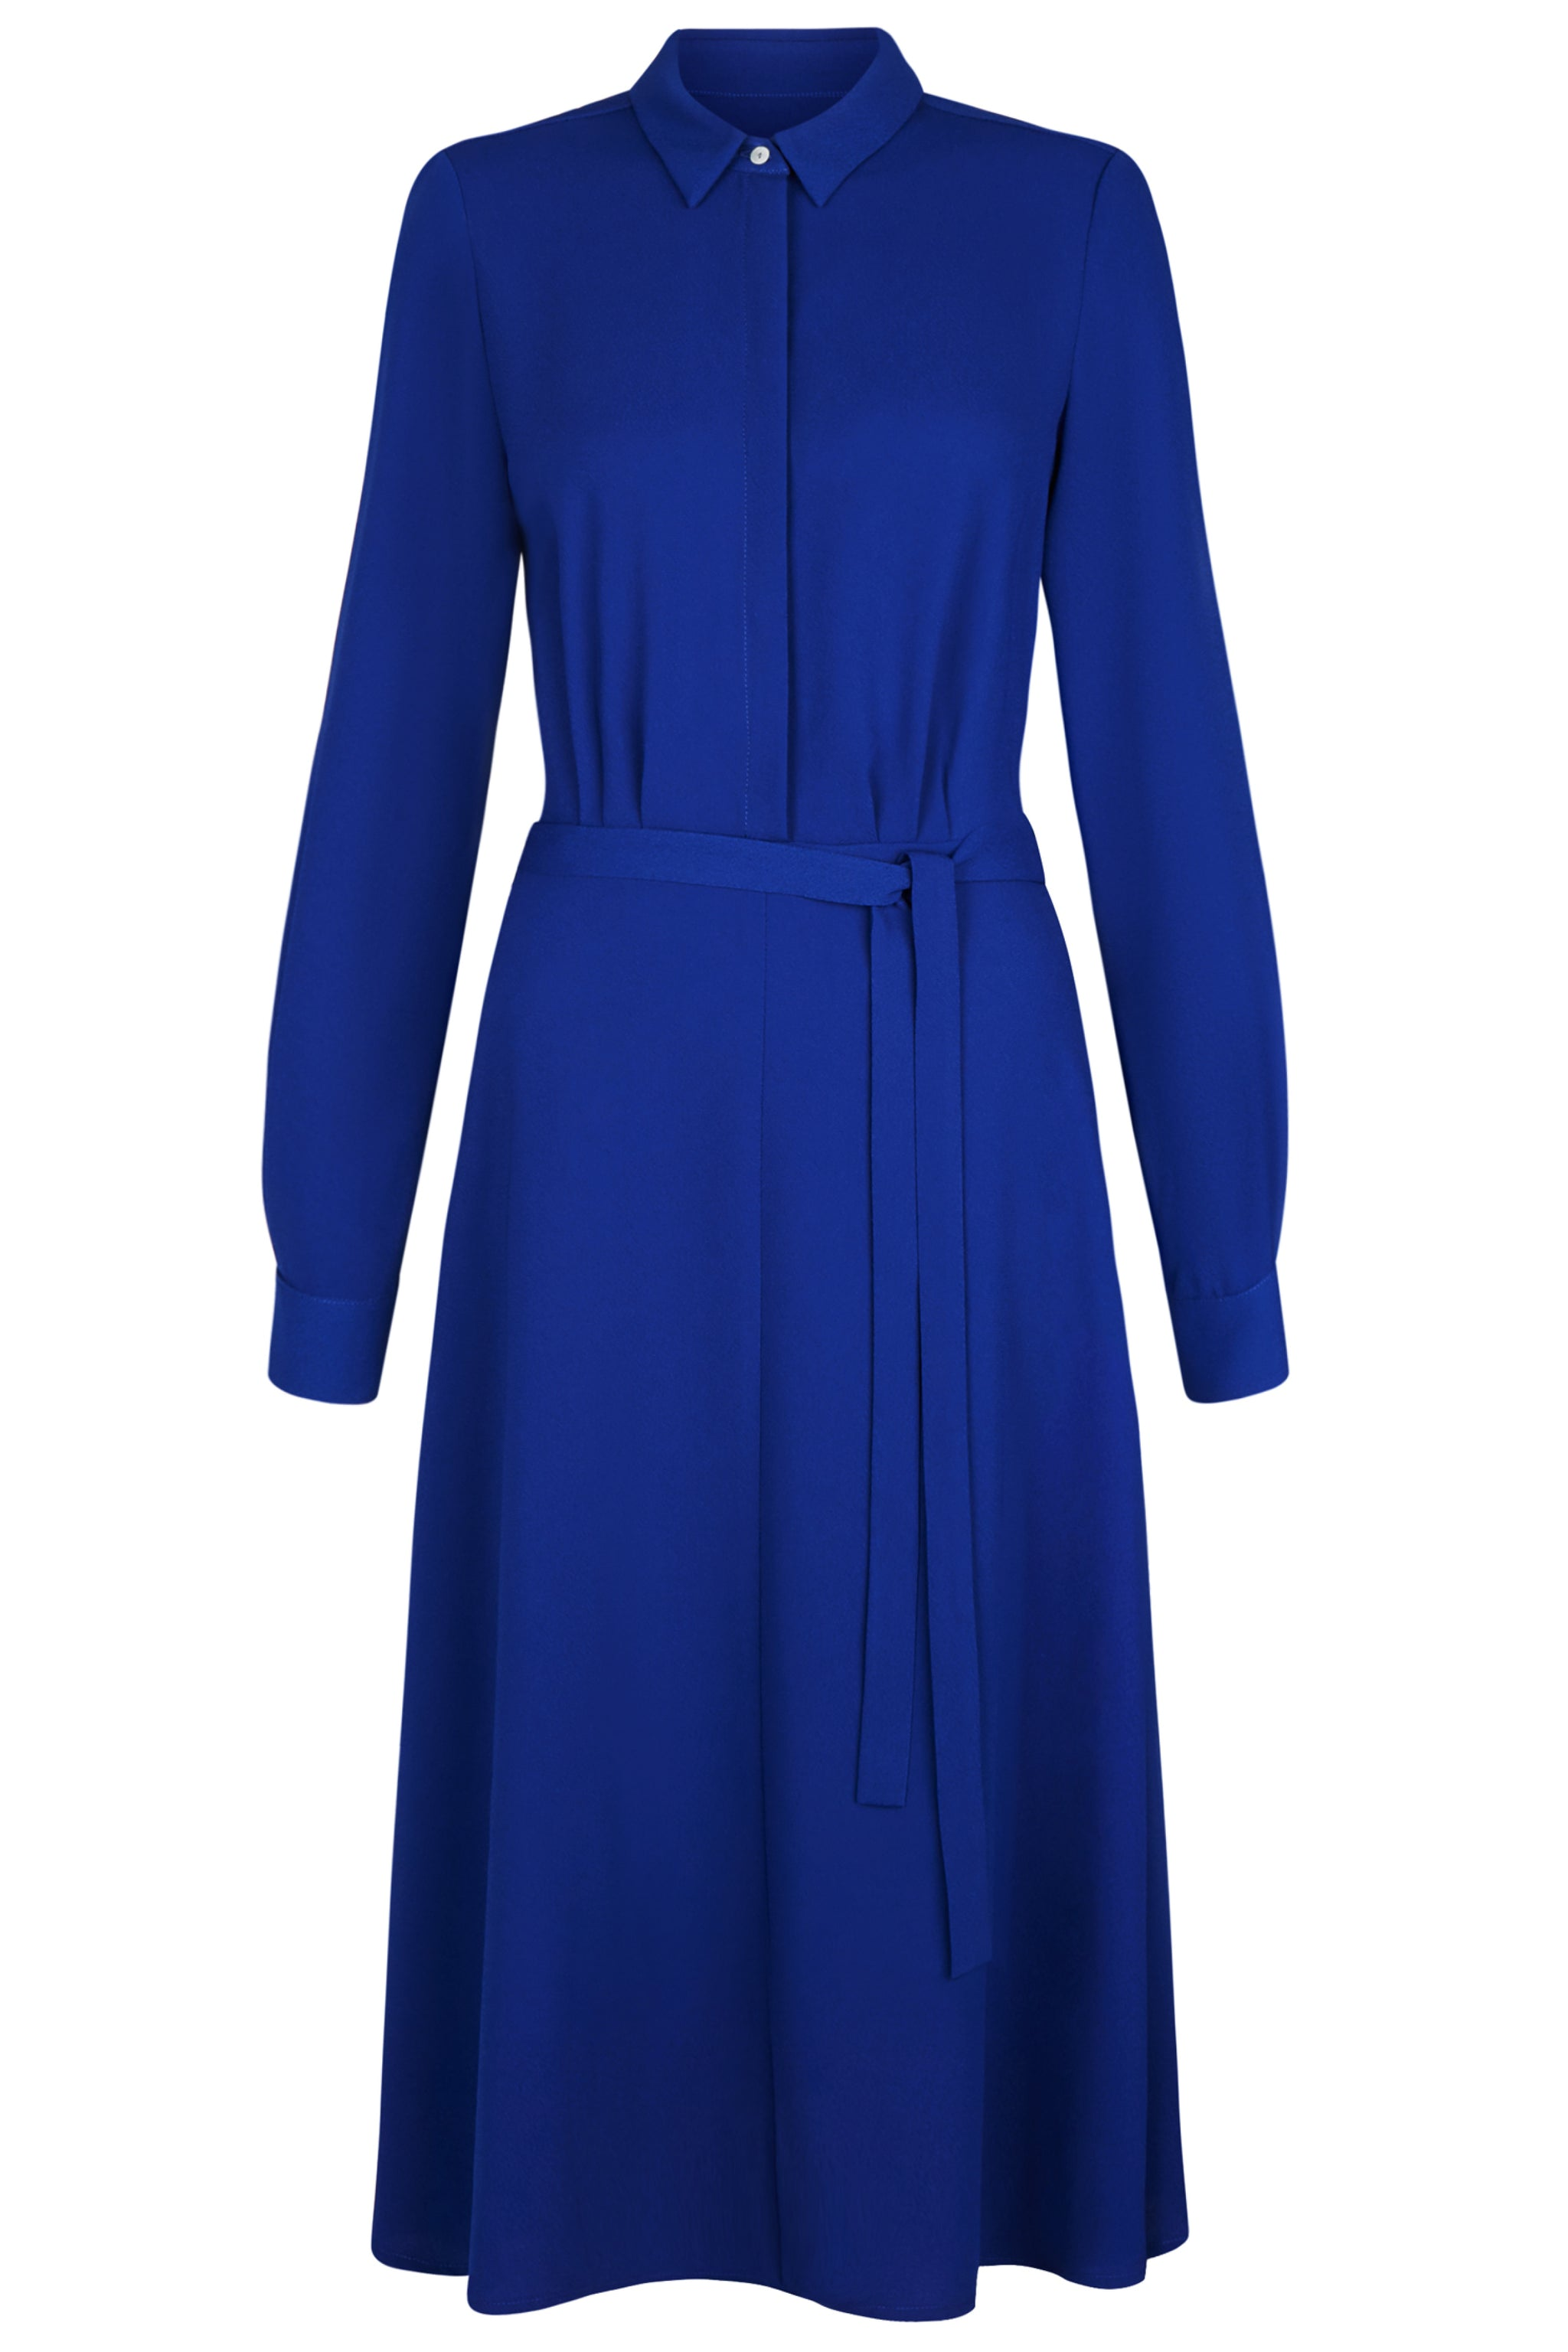 Exeter Cobalt Shirt Dress